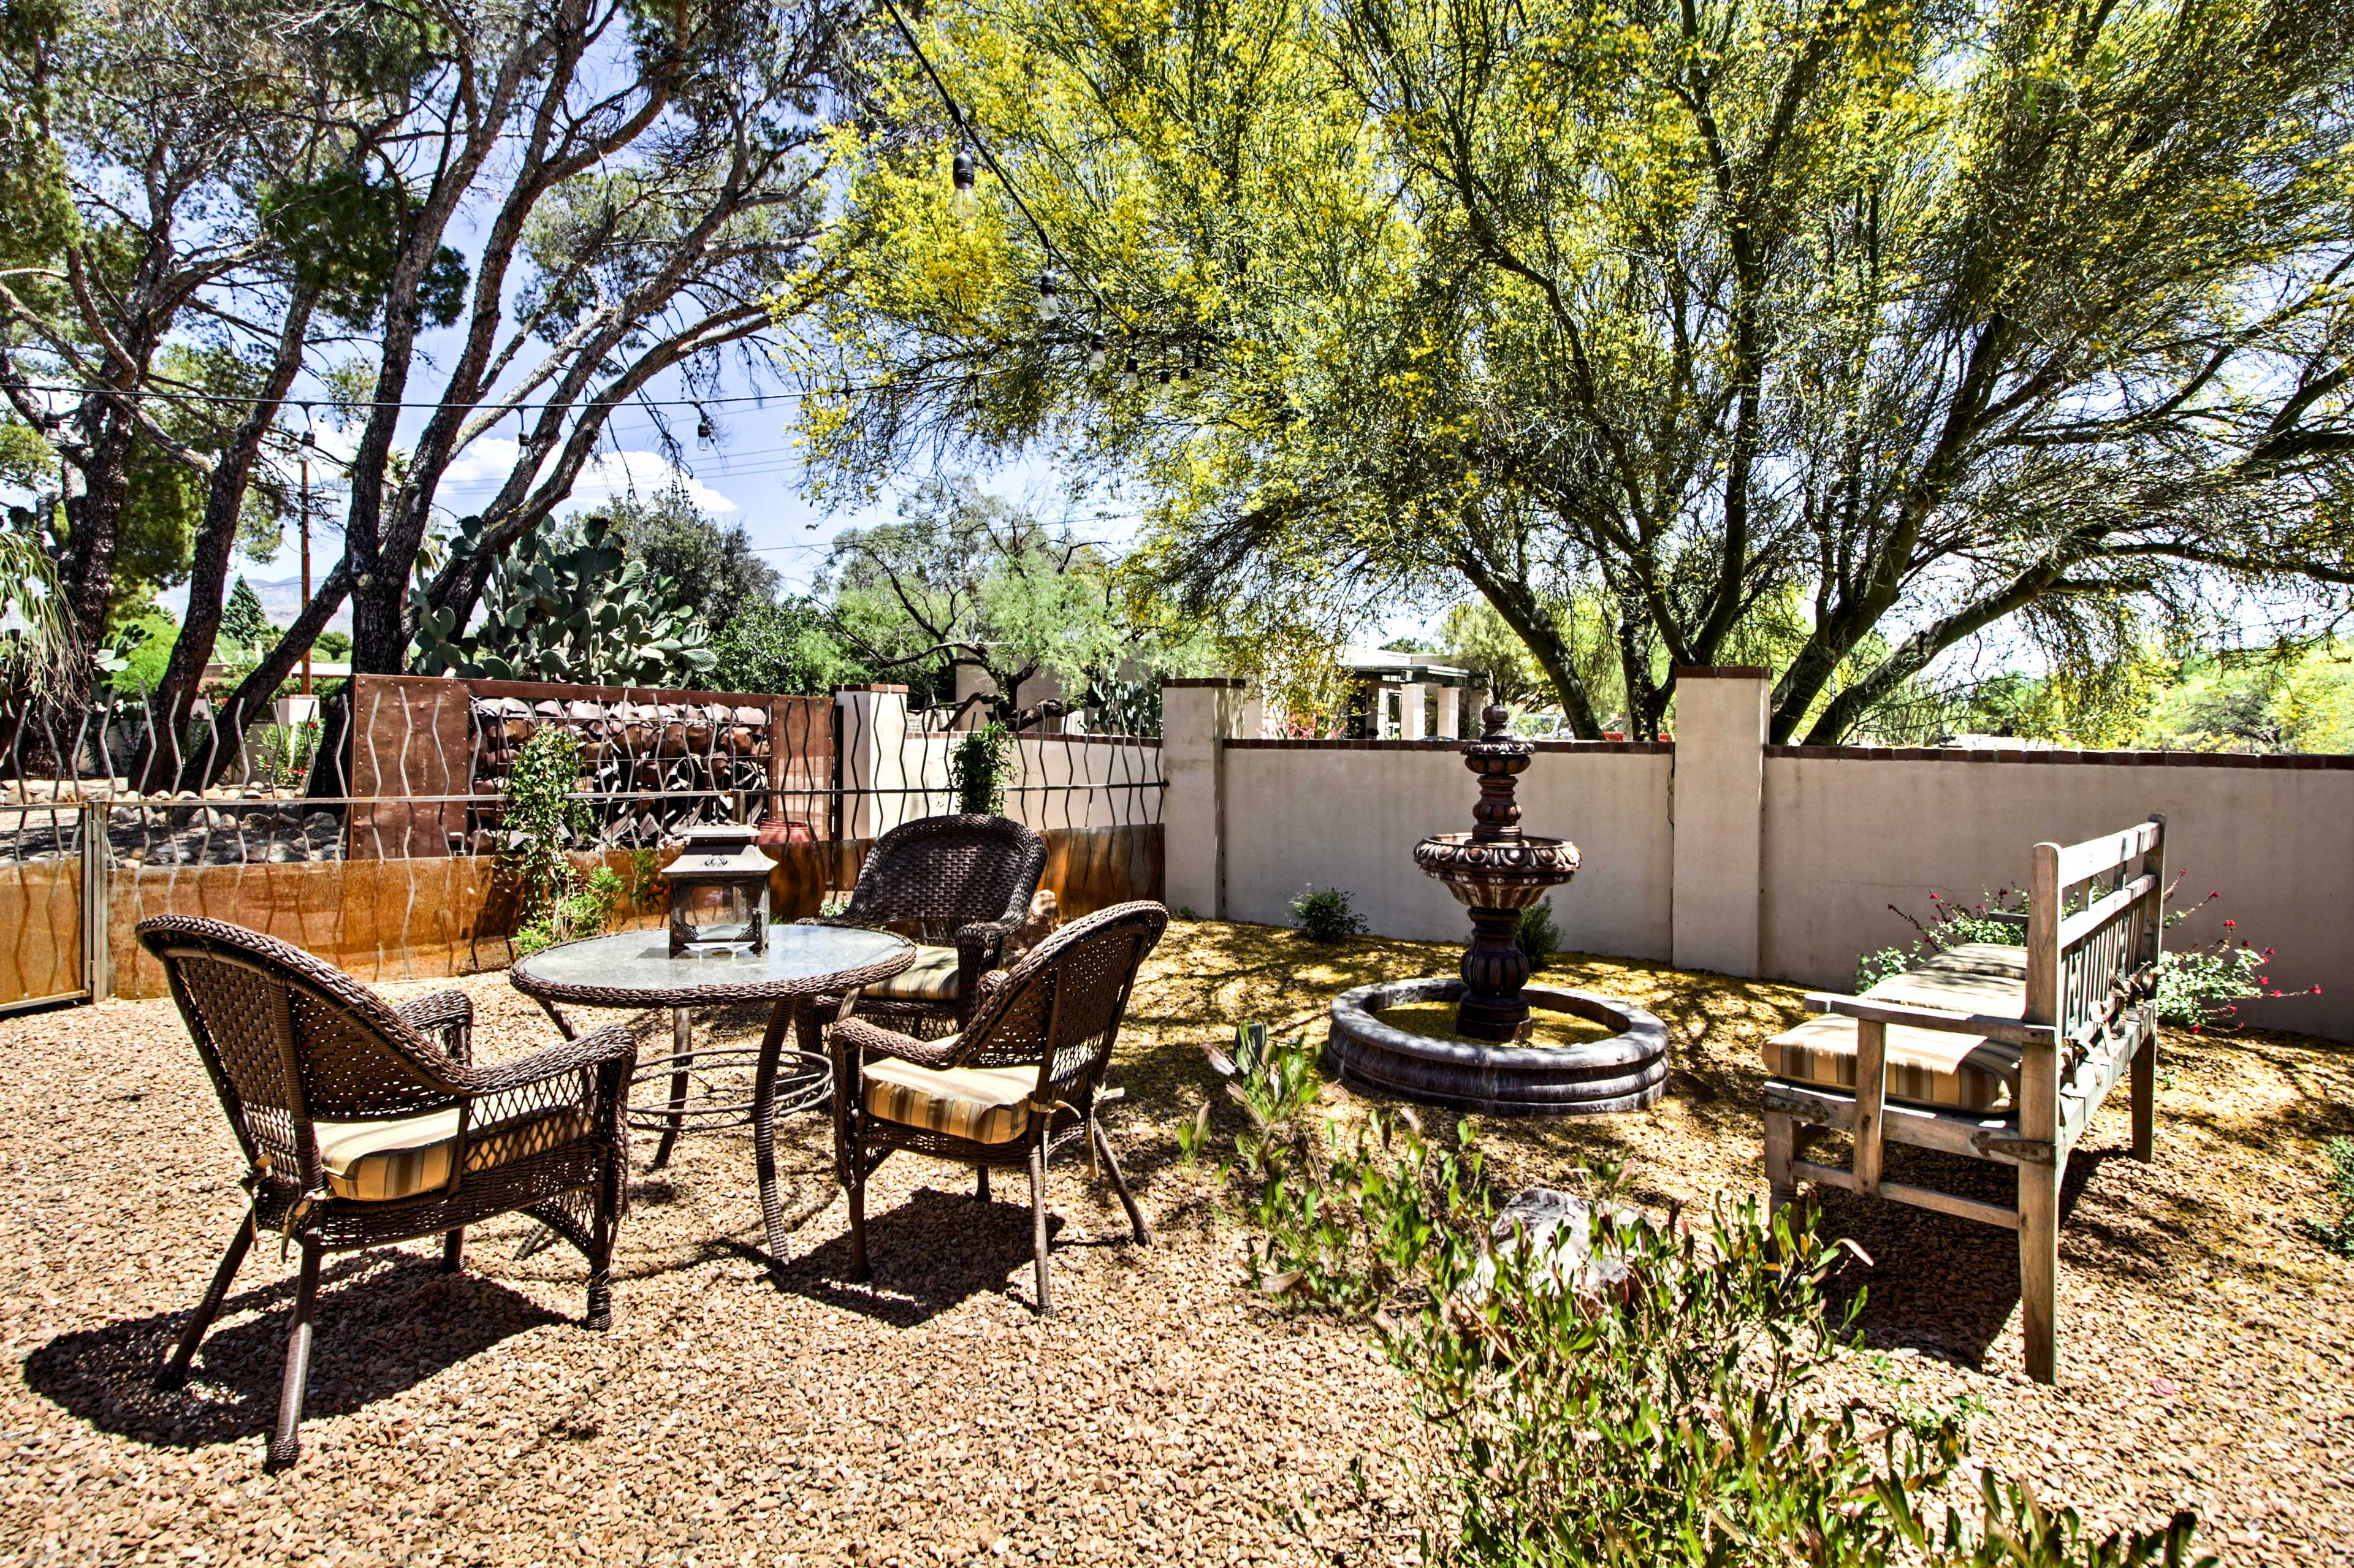 Enjoy picnics at one of several outdoor seating areas.